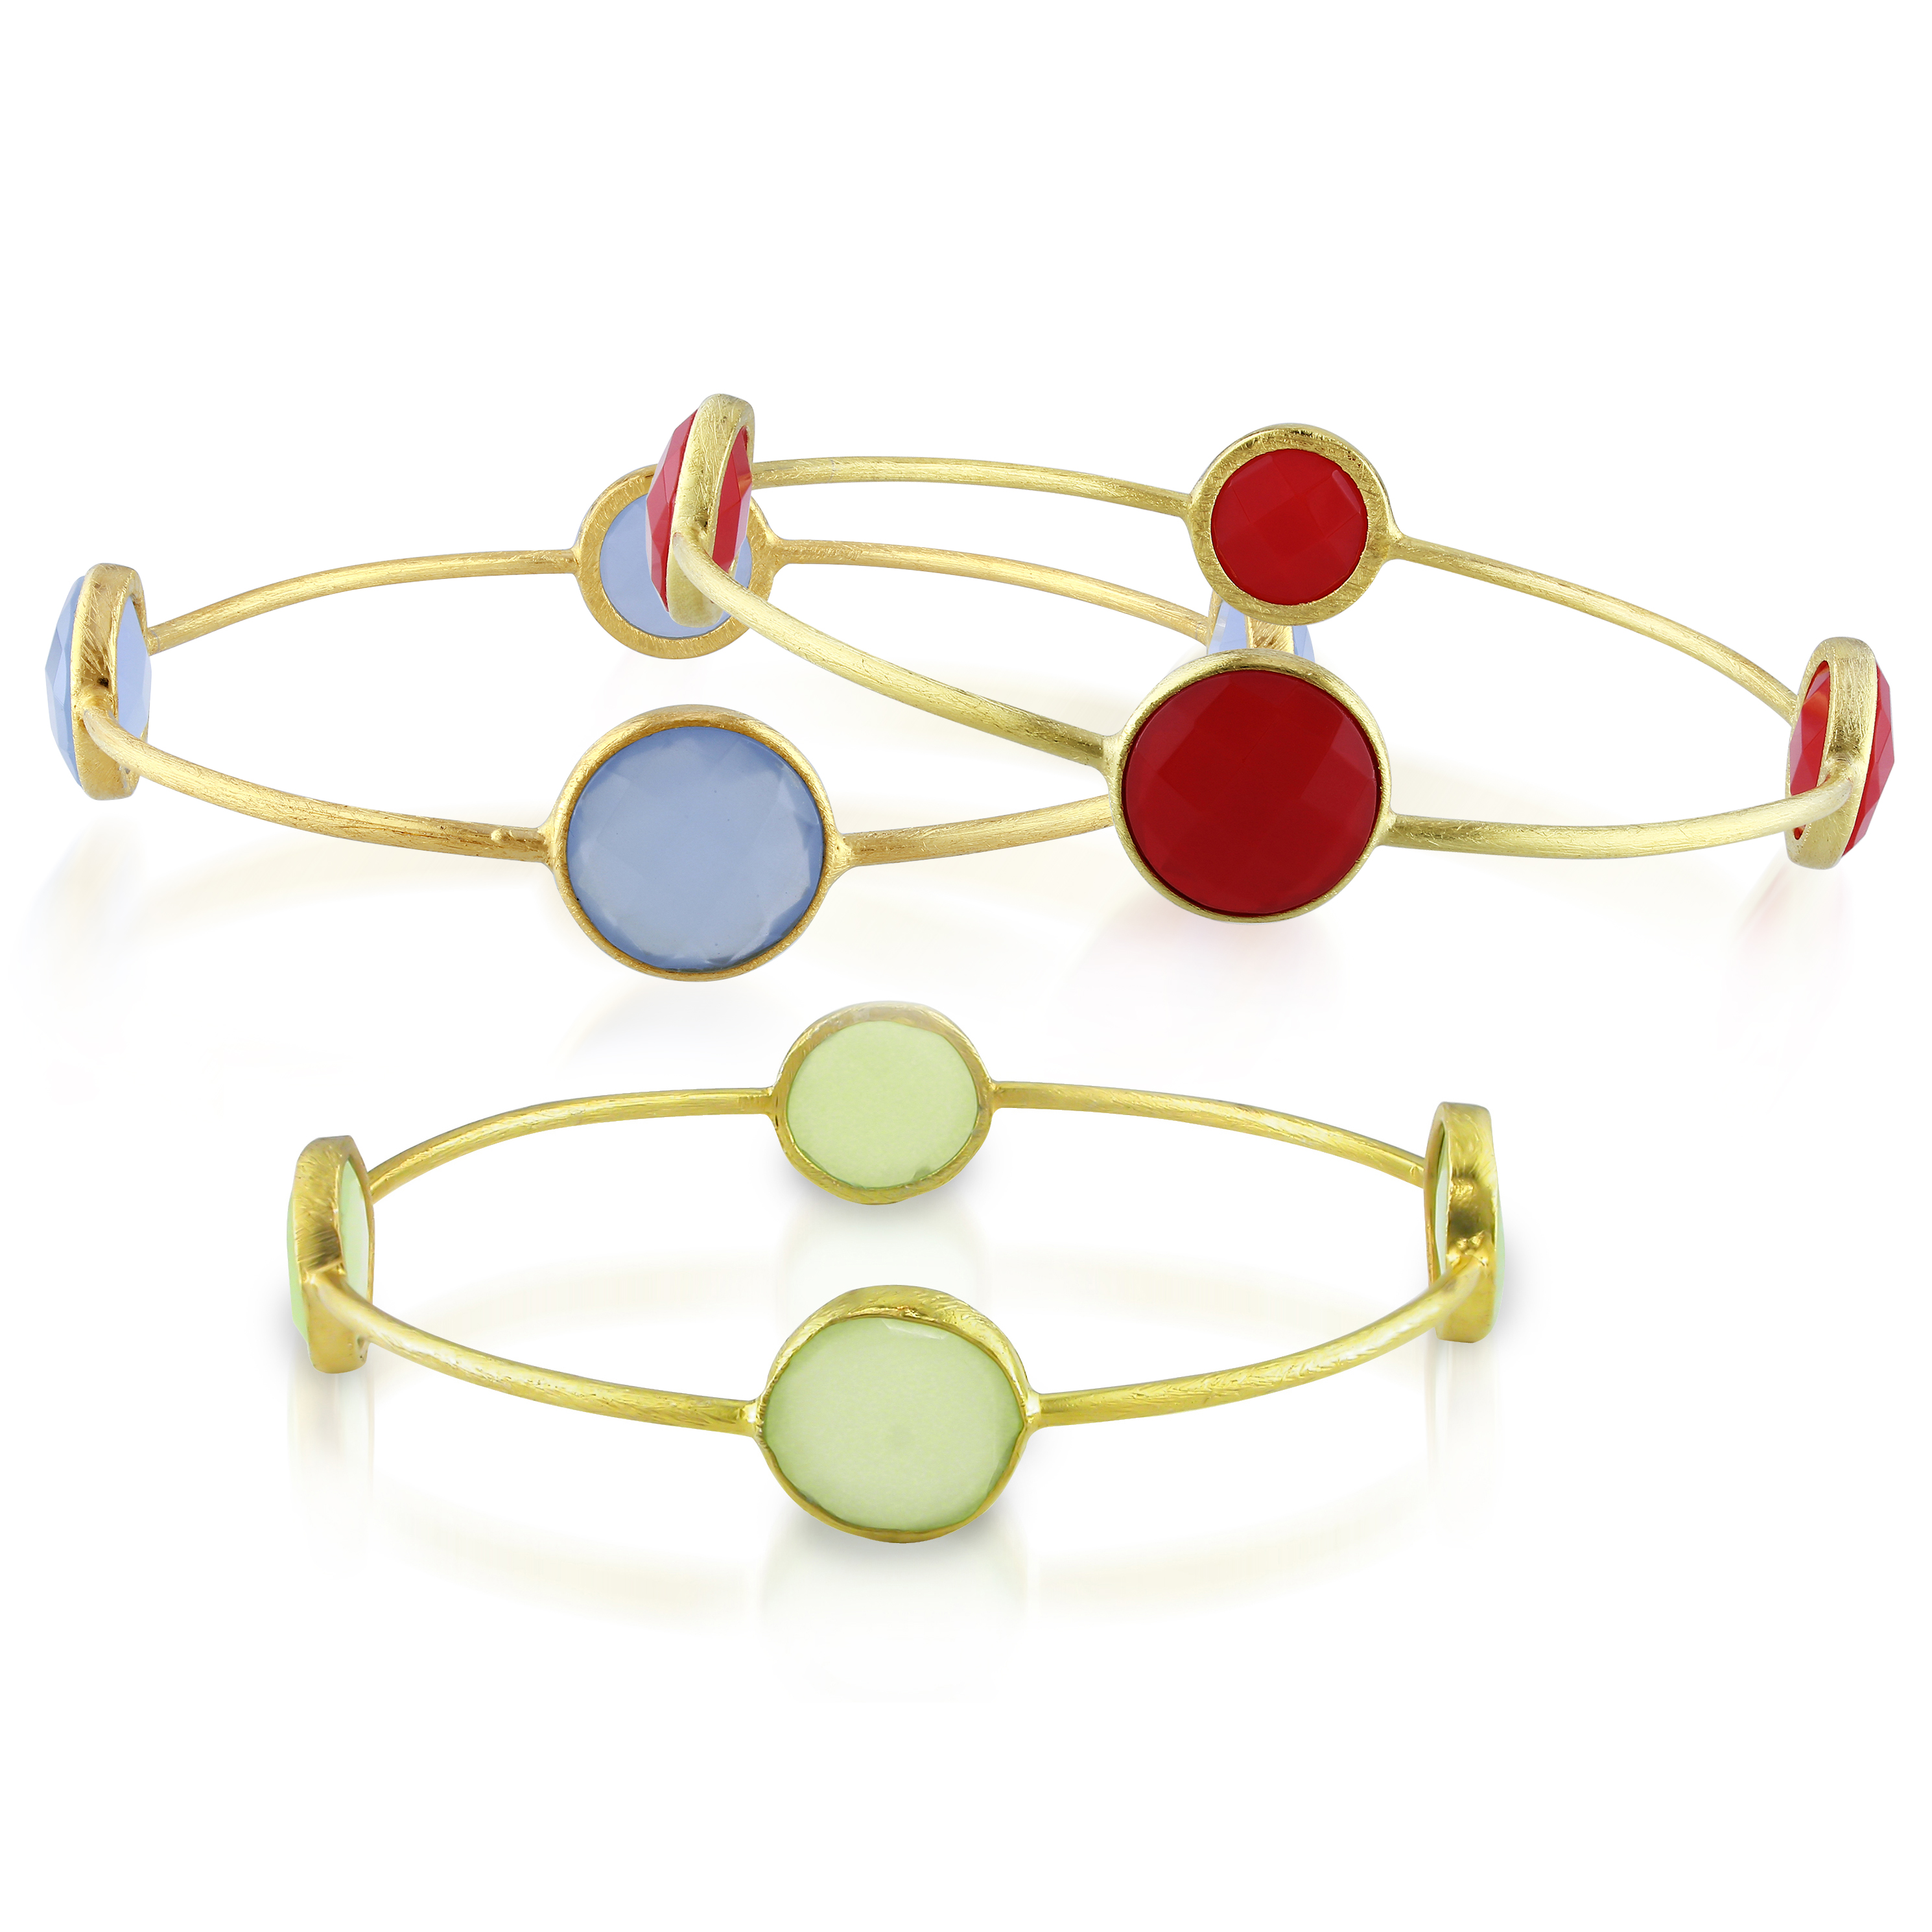 Tangelo 56 Carat T.G.W. Synthetic Green Chalcedony, Blue Onyx and Carnelian Yellow-Plated Sterling Silver Set of 3... by Delmar